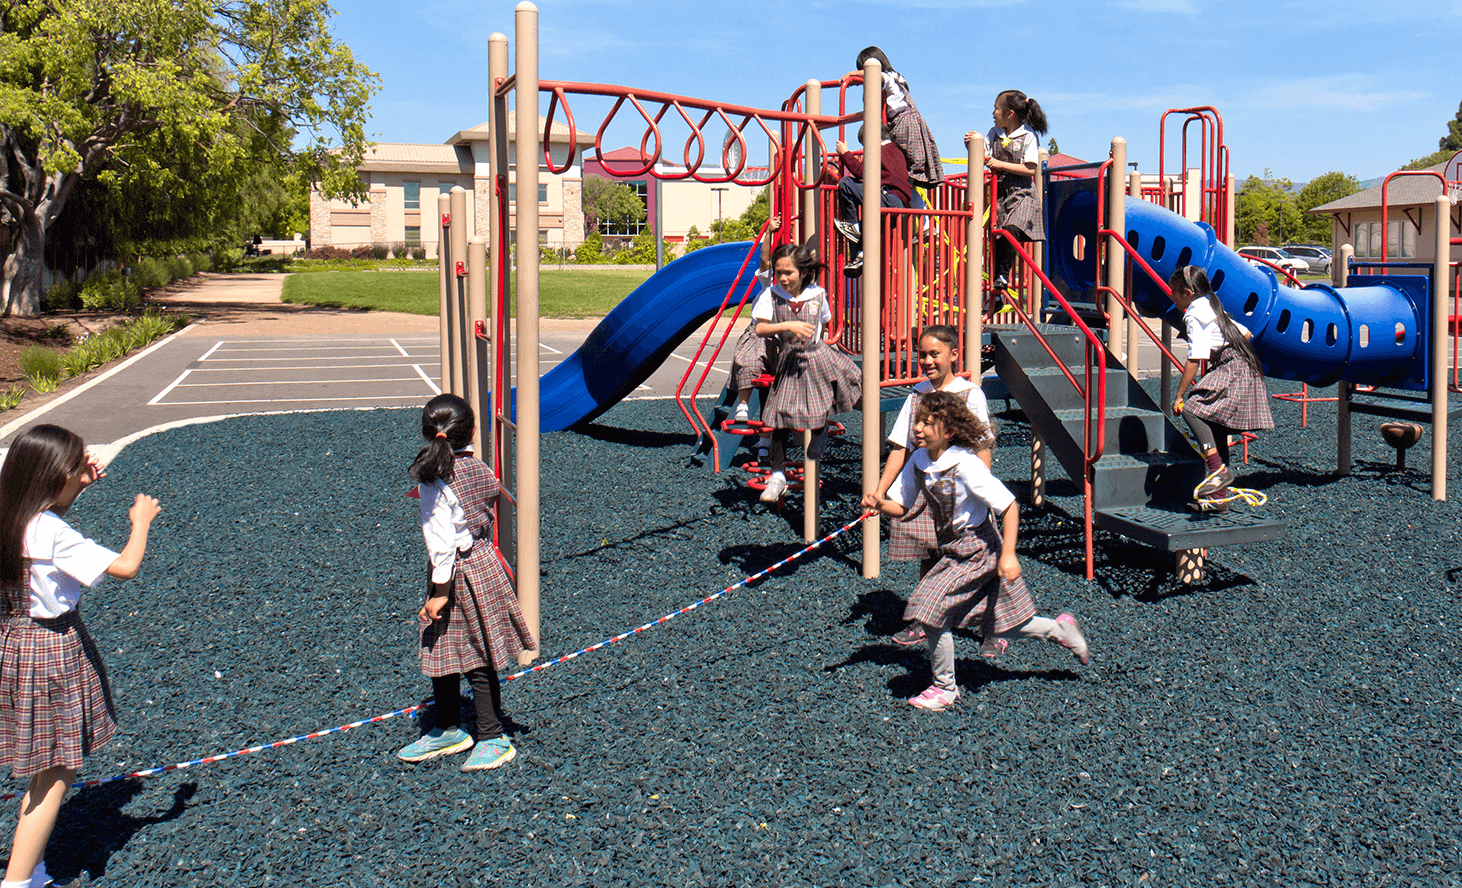 Elementary School Playground | Challenger School - Berryessa | Private School In San Jose, California